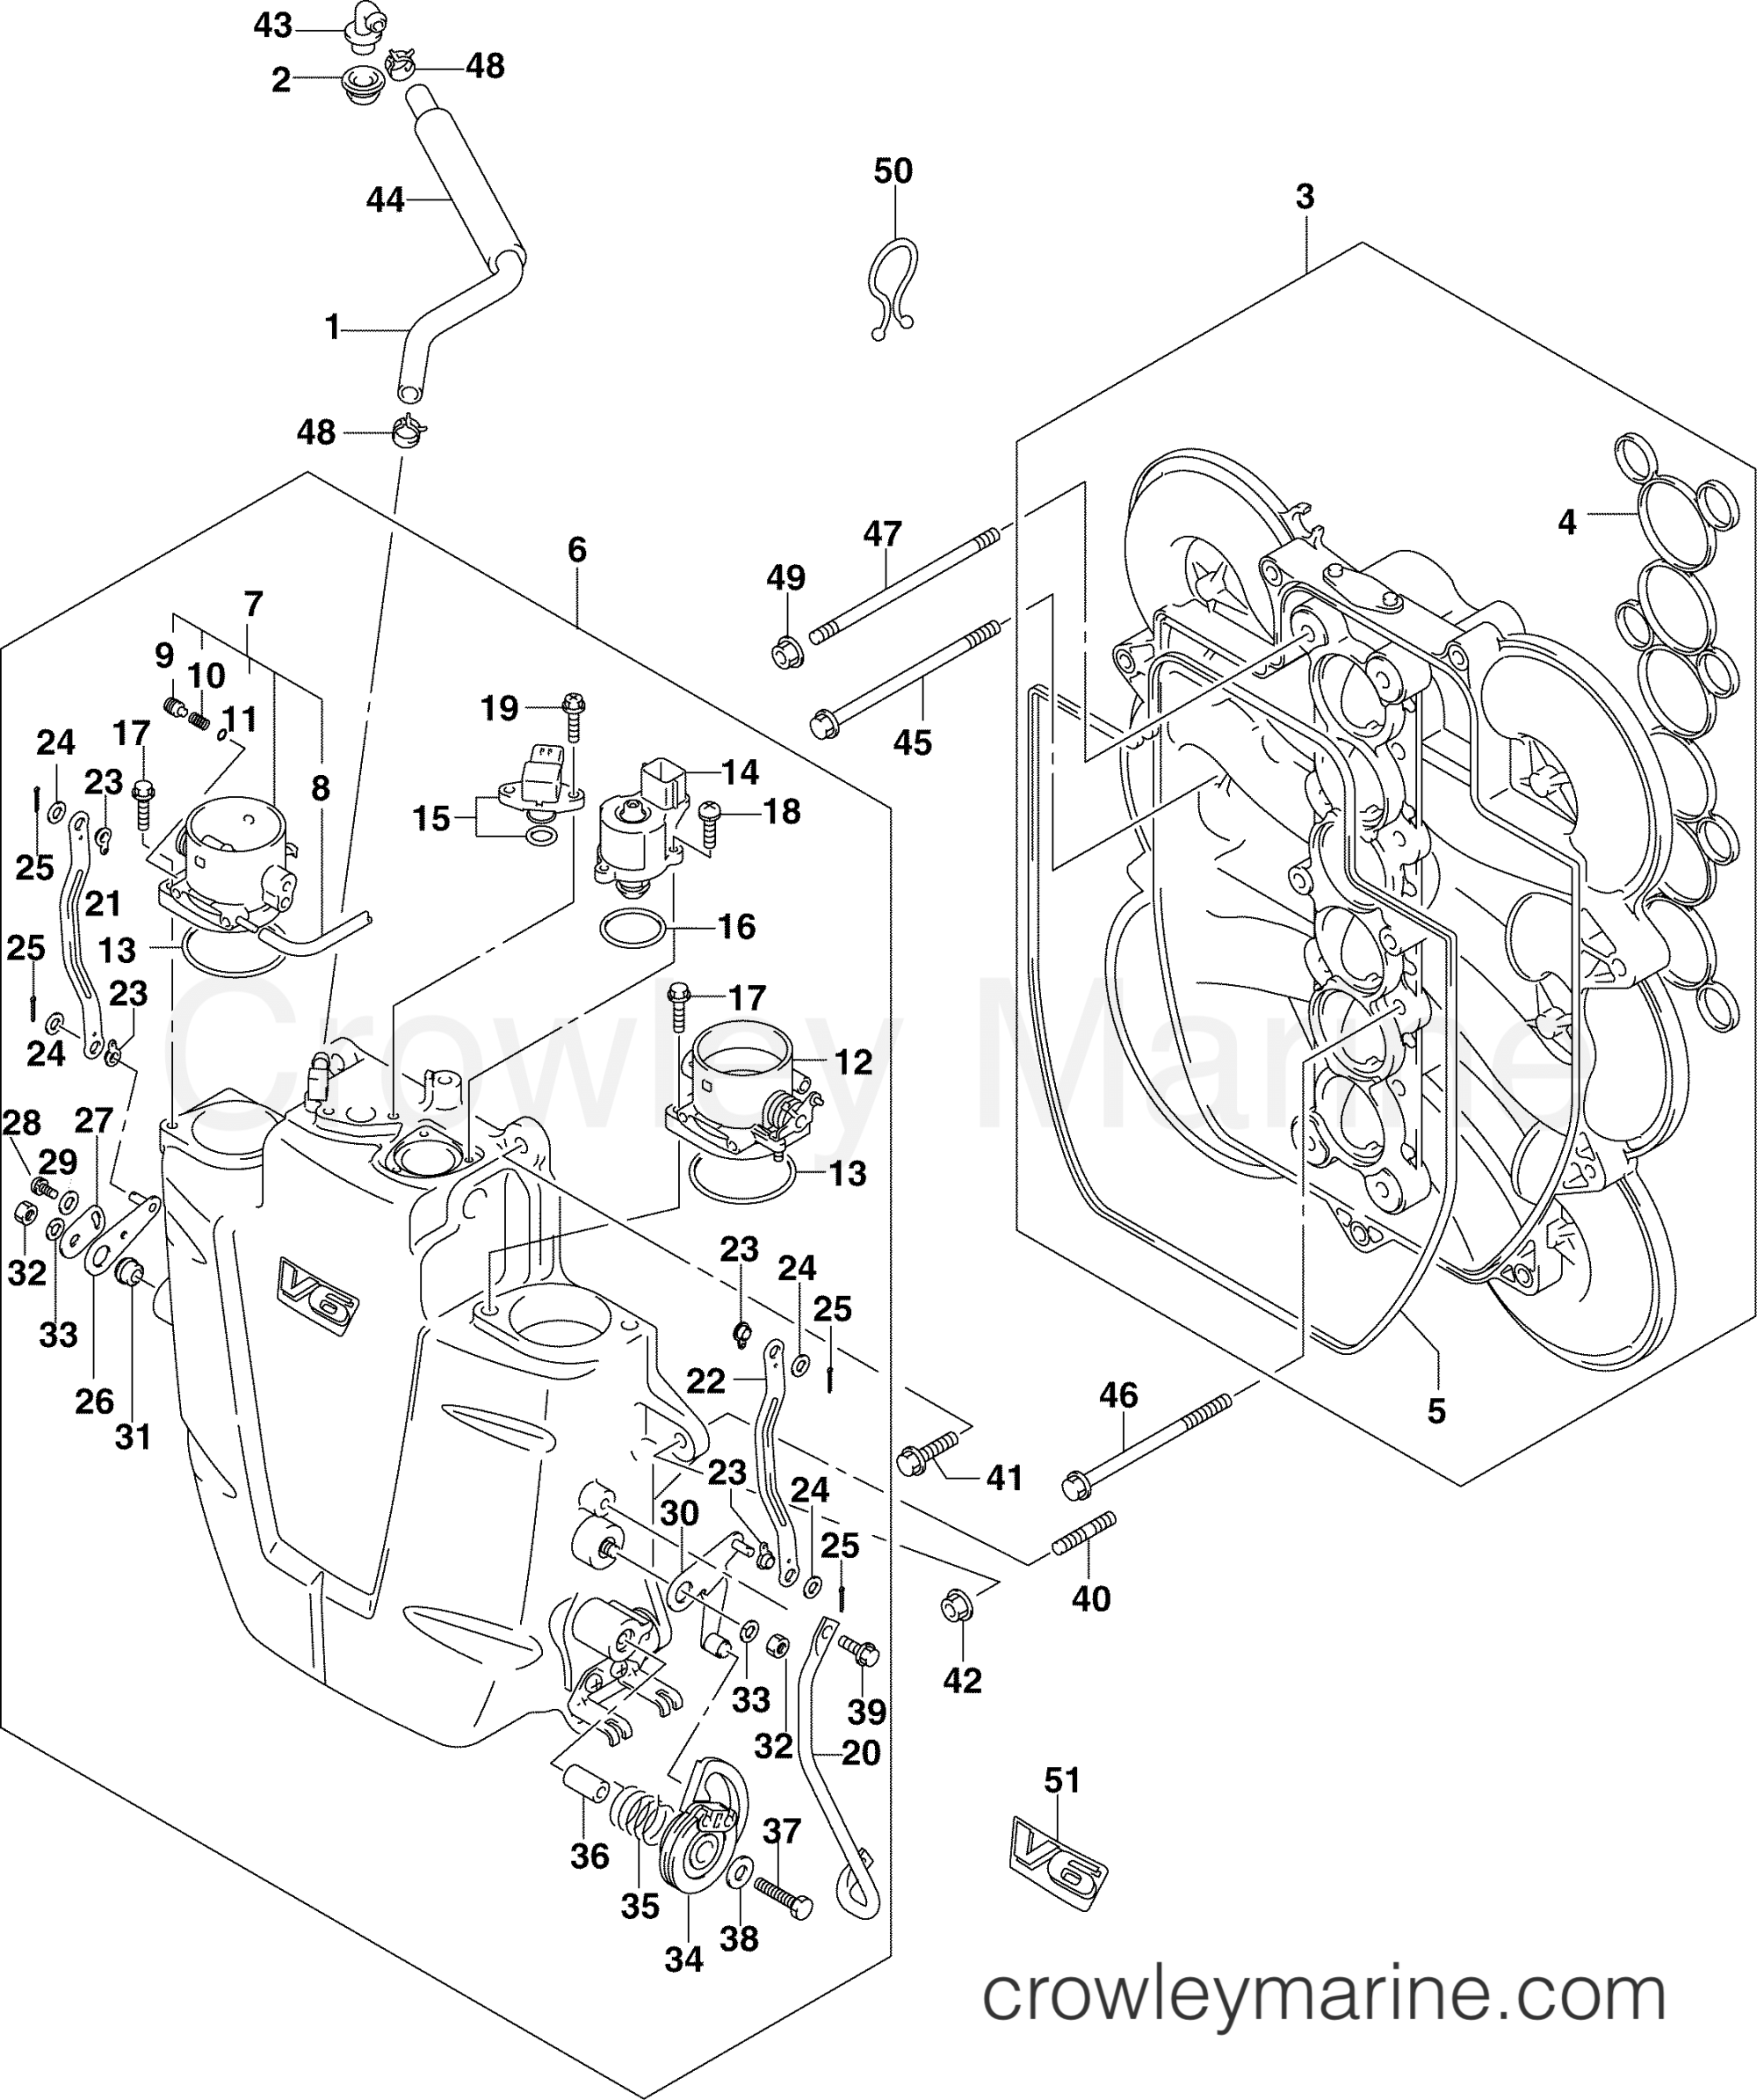 hight resolution of throttle body 200hp 2004 johnson outboards 200 j200px4srs 43 throttle body diagram